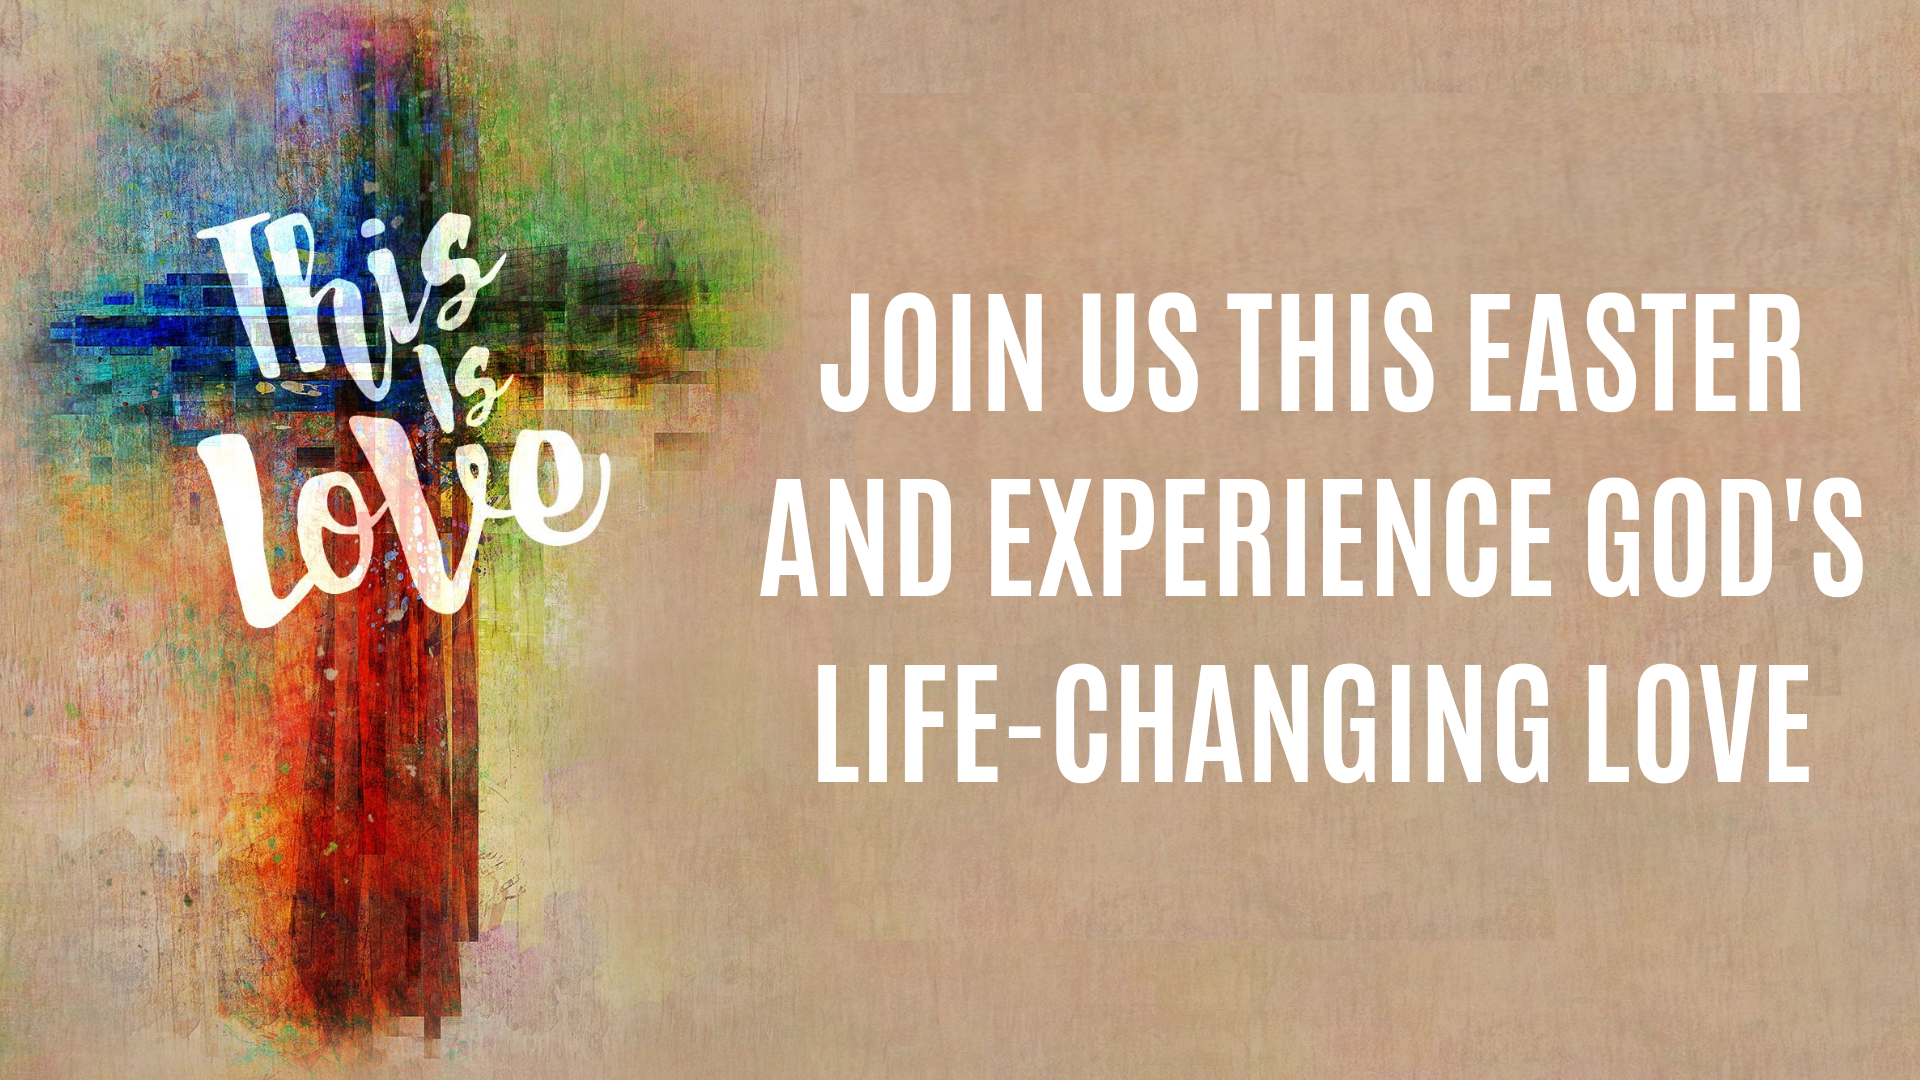 JOIN US THIS EASTER AND EXPERIENCE GOD'S LIFE-CHANGING LOVE.png